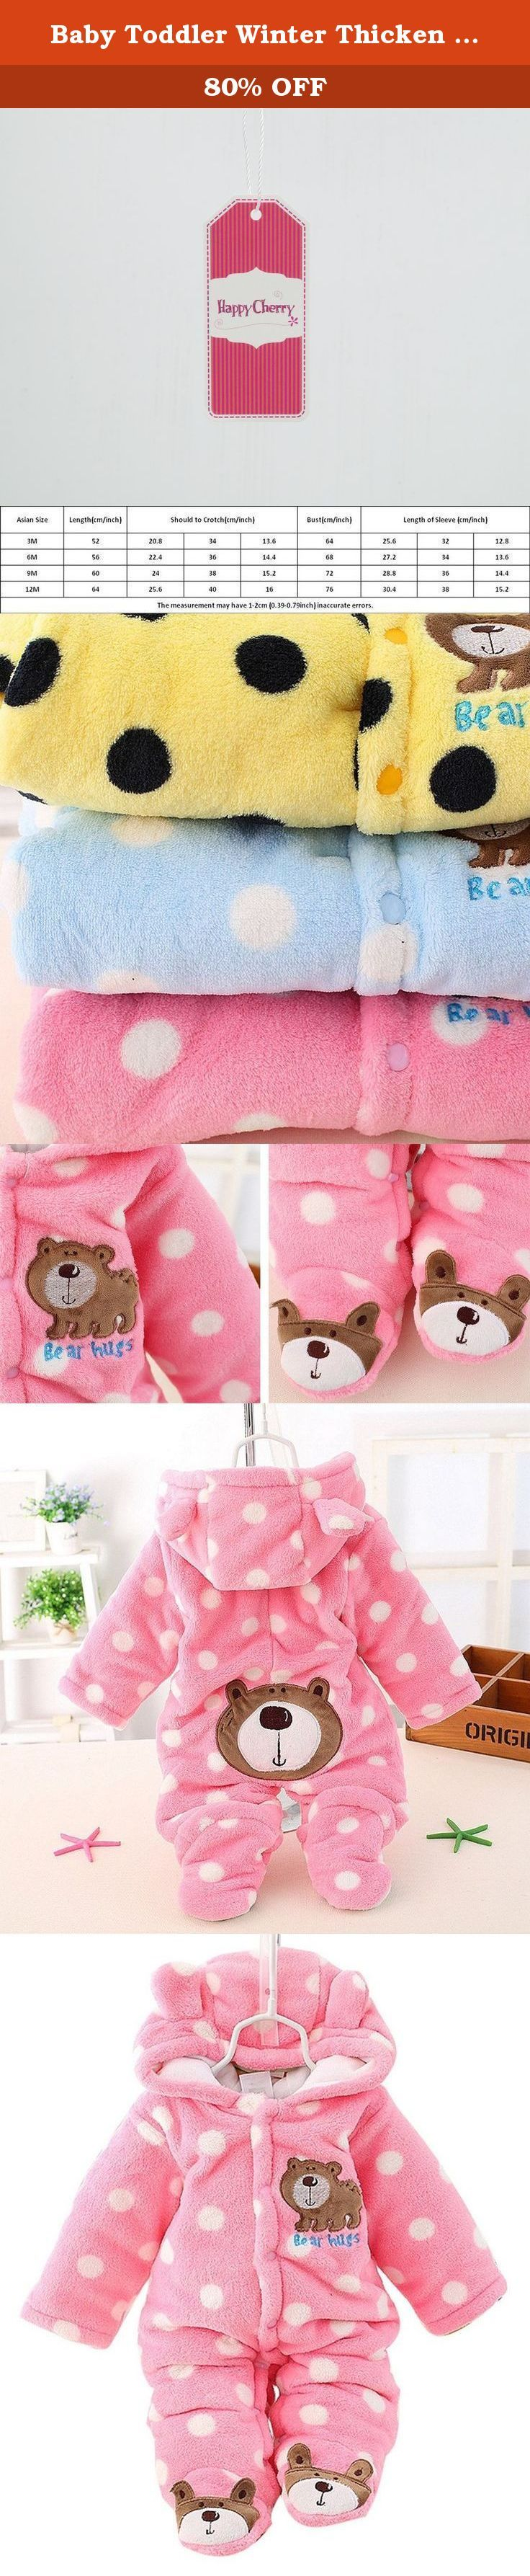 """Baby Toddler Winter Thicken Rompers Button Open Foot Cover Outwear Jacket Pink for 9-12M. Features: This romper made of 100% high quility cotton, super soft material keeps your child comfortable and warm. Suitable for spring, autumn, winter season. Lovly appearence makes your kid handsome and stylish. Specifications: Material: Cotton blend Color: As the picture shown Size: S(0-3M): Length: 52cm/20.5"""", Bust: 64cm/25.2"""", Sleeve: 32cm/12.6"""" M(3-6M): Length: 56cm/22.0"""", Bust: 68cm/26.8""""…"""